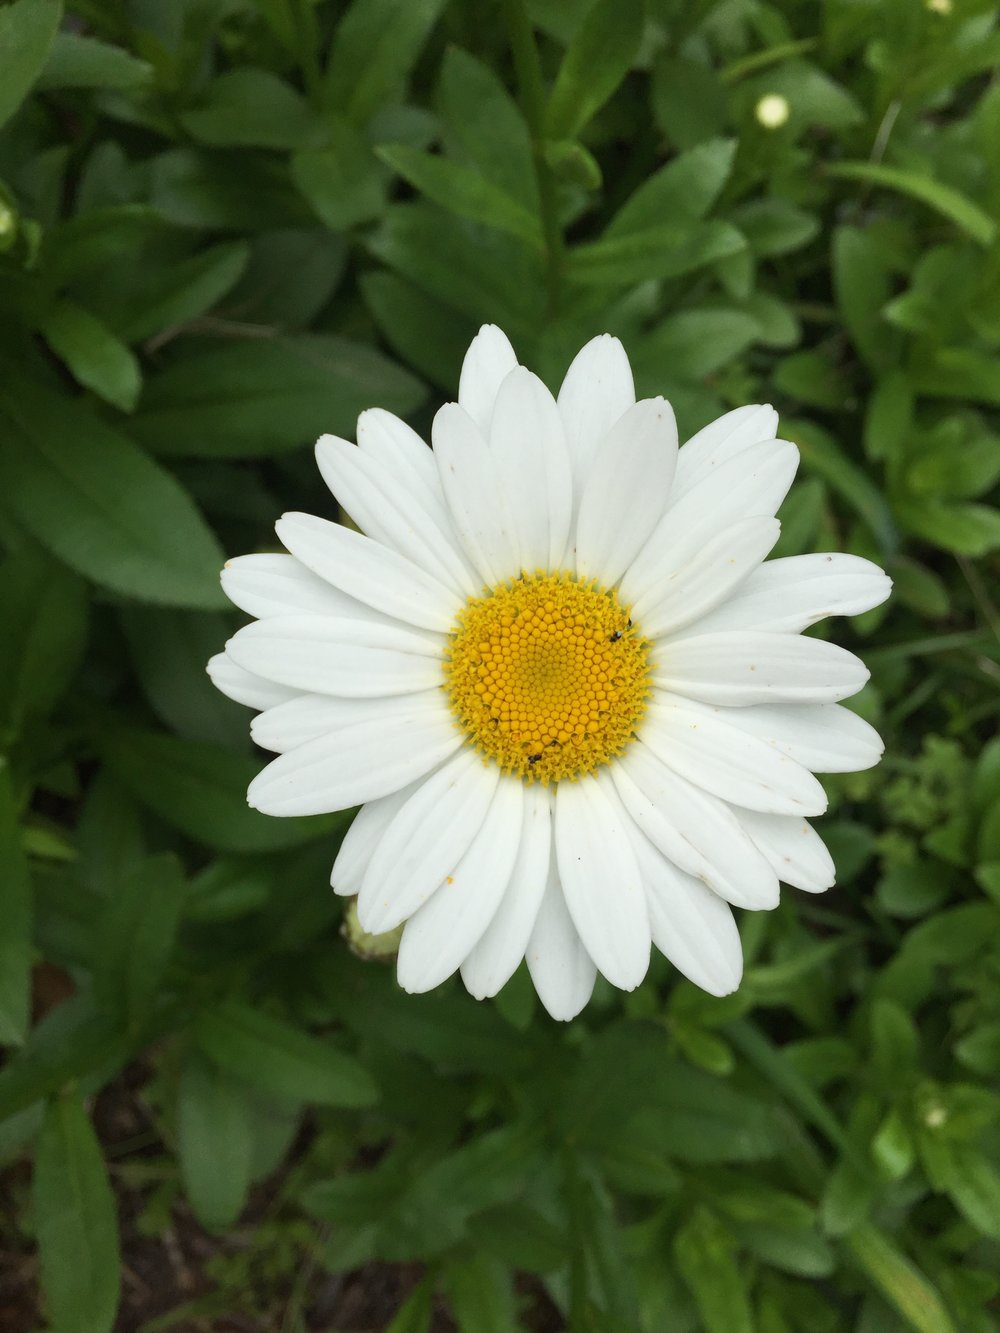 A simple daisy, fully open, offering its face to the world